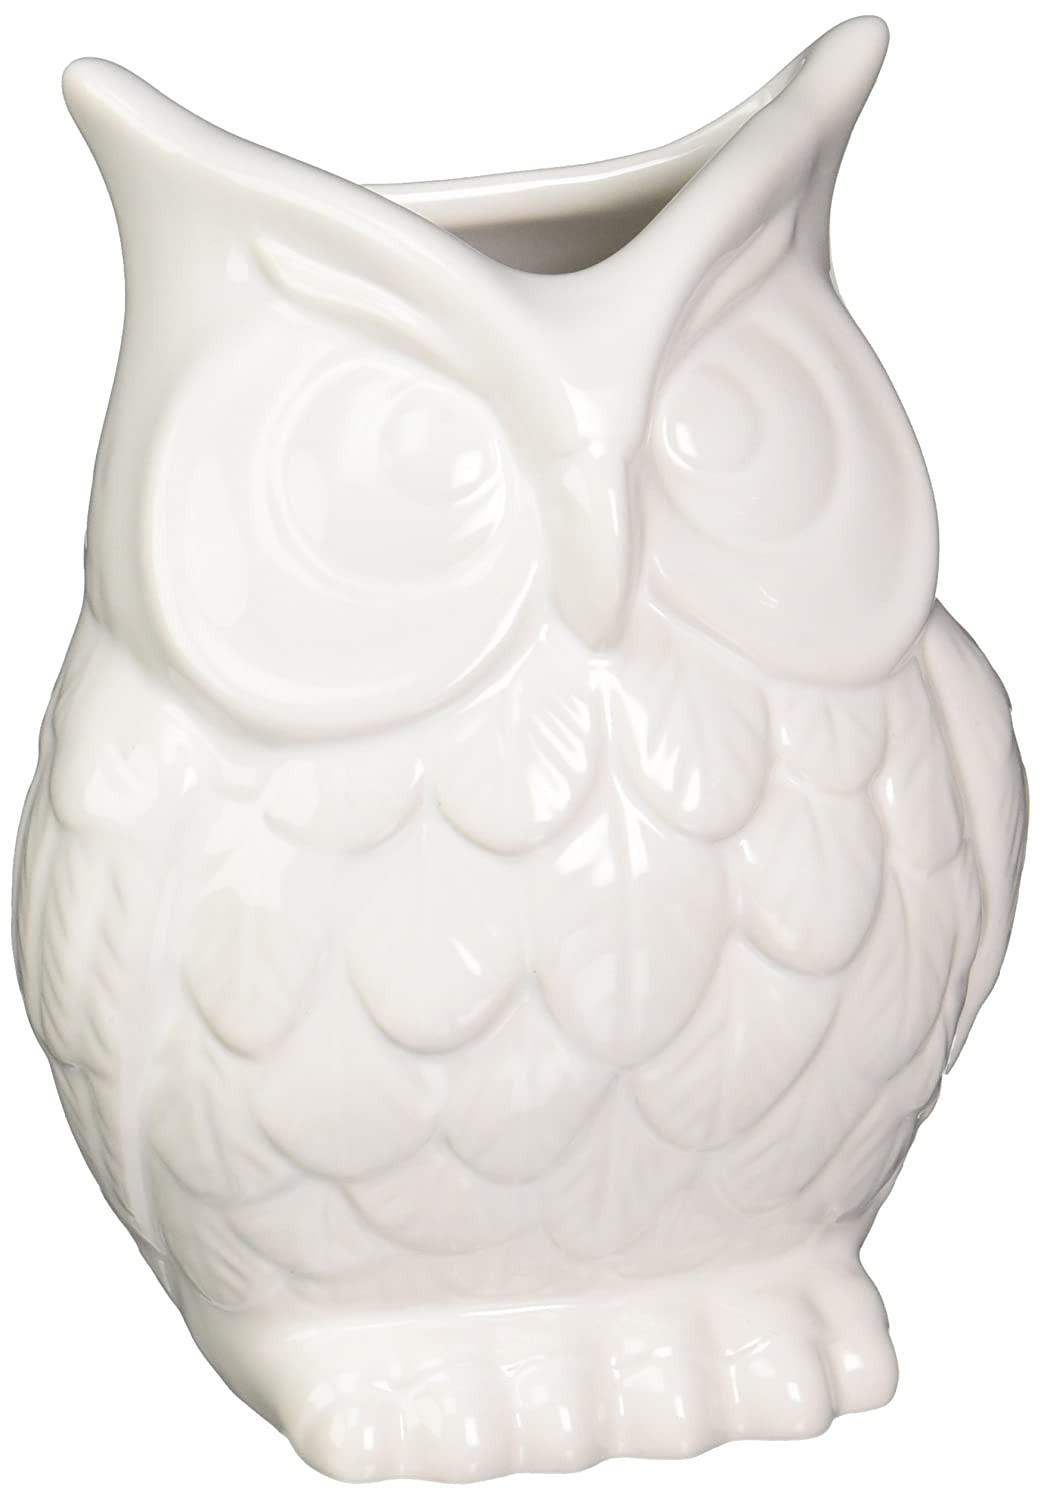 Vases amazon home decor abbott ceramic owl vase white reviewsmspy